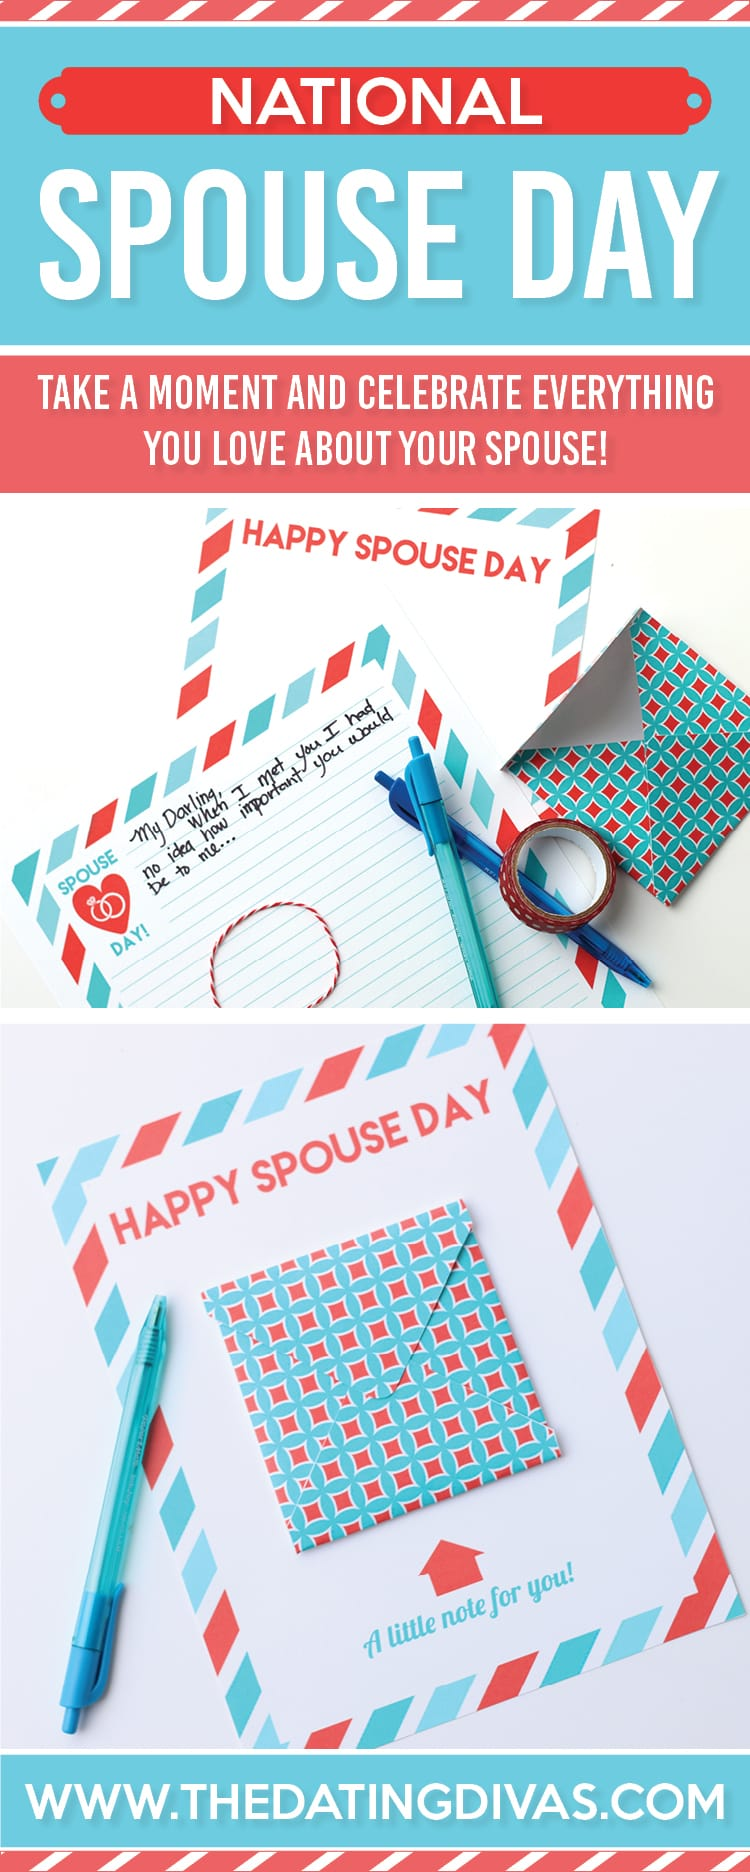 Free printable National Spouse Day card for your special someone! #TheDatingDivas #NationalSpouseDay #PrintableCard